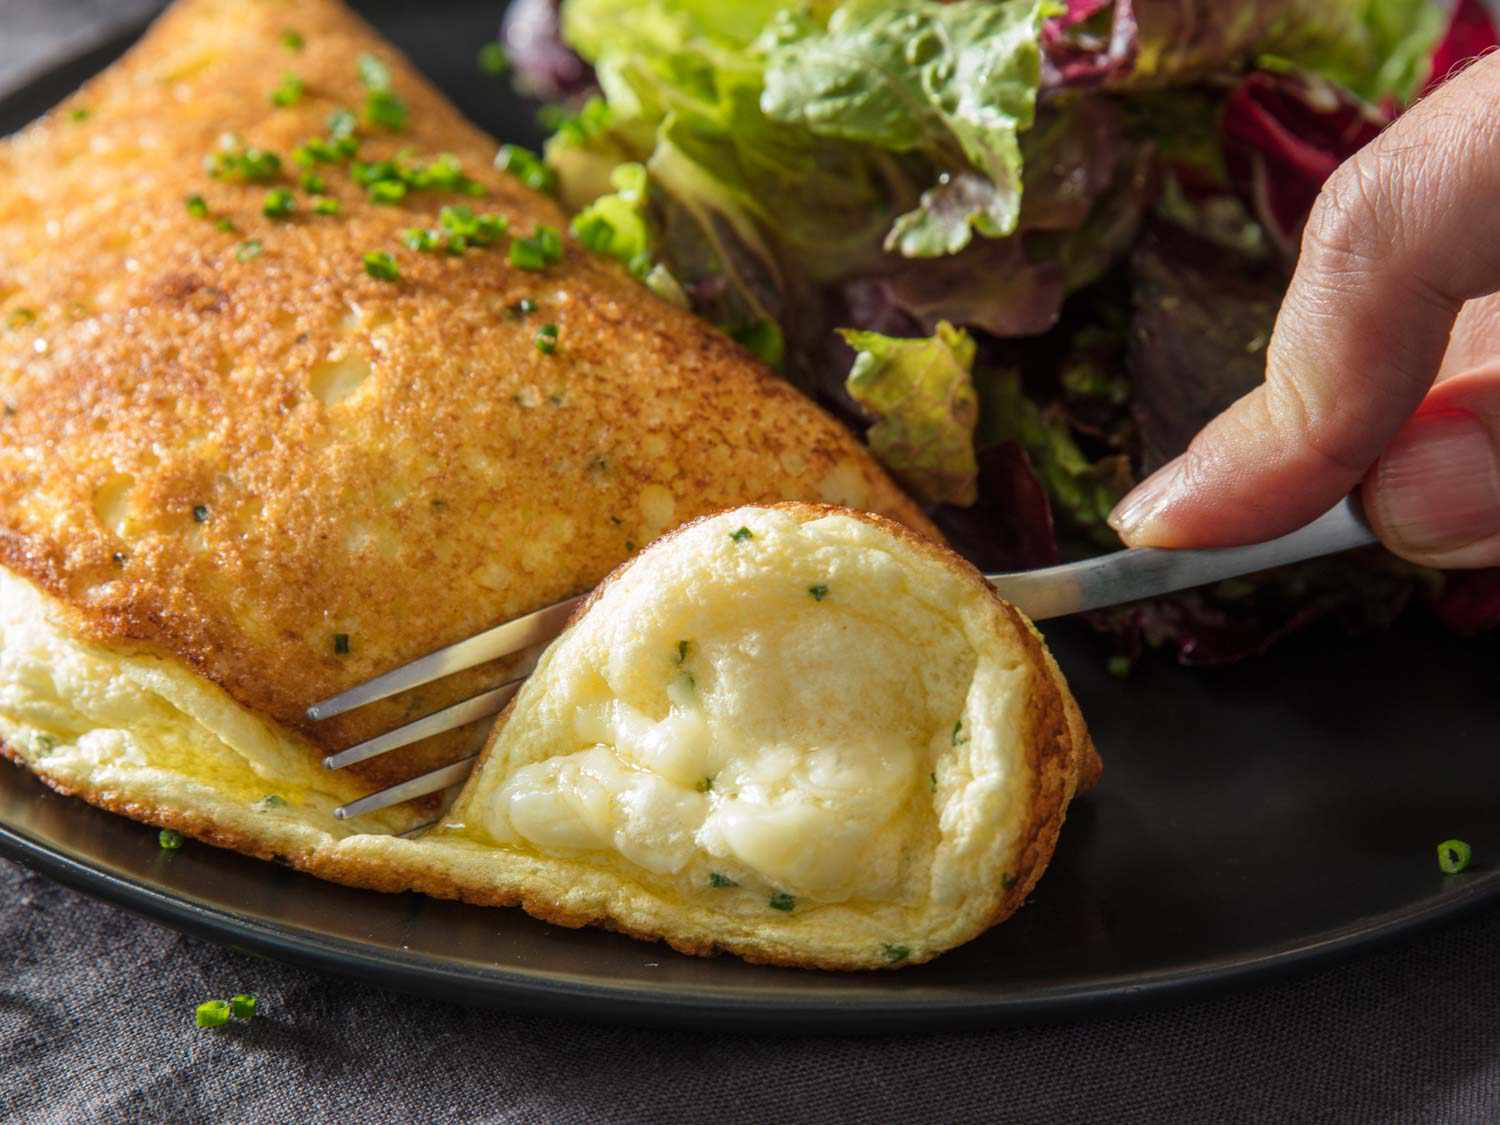 Using a fork to cut into a souffle omelette on a black plate with a salad on the side.